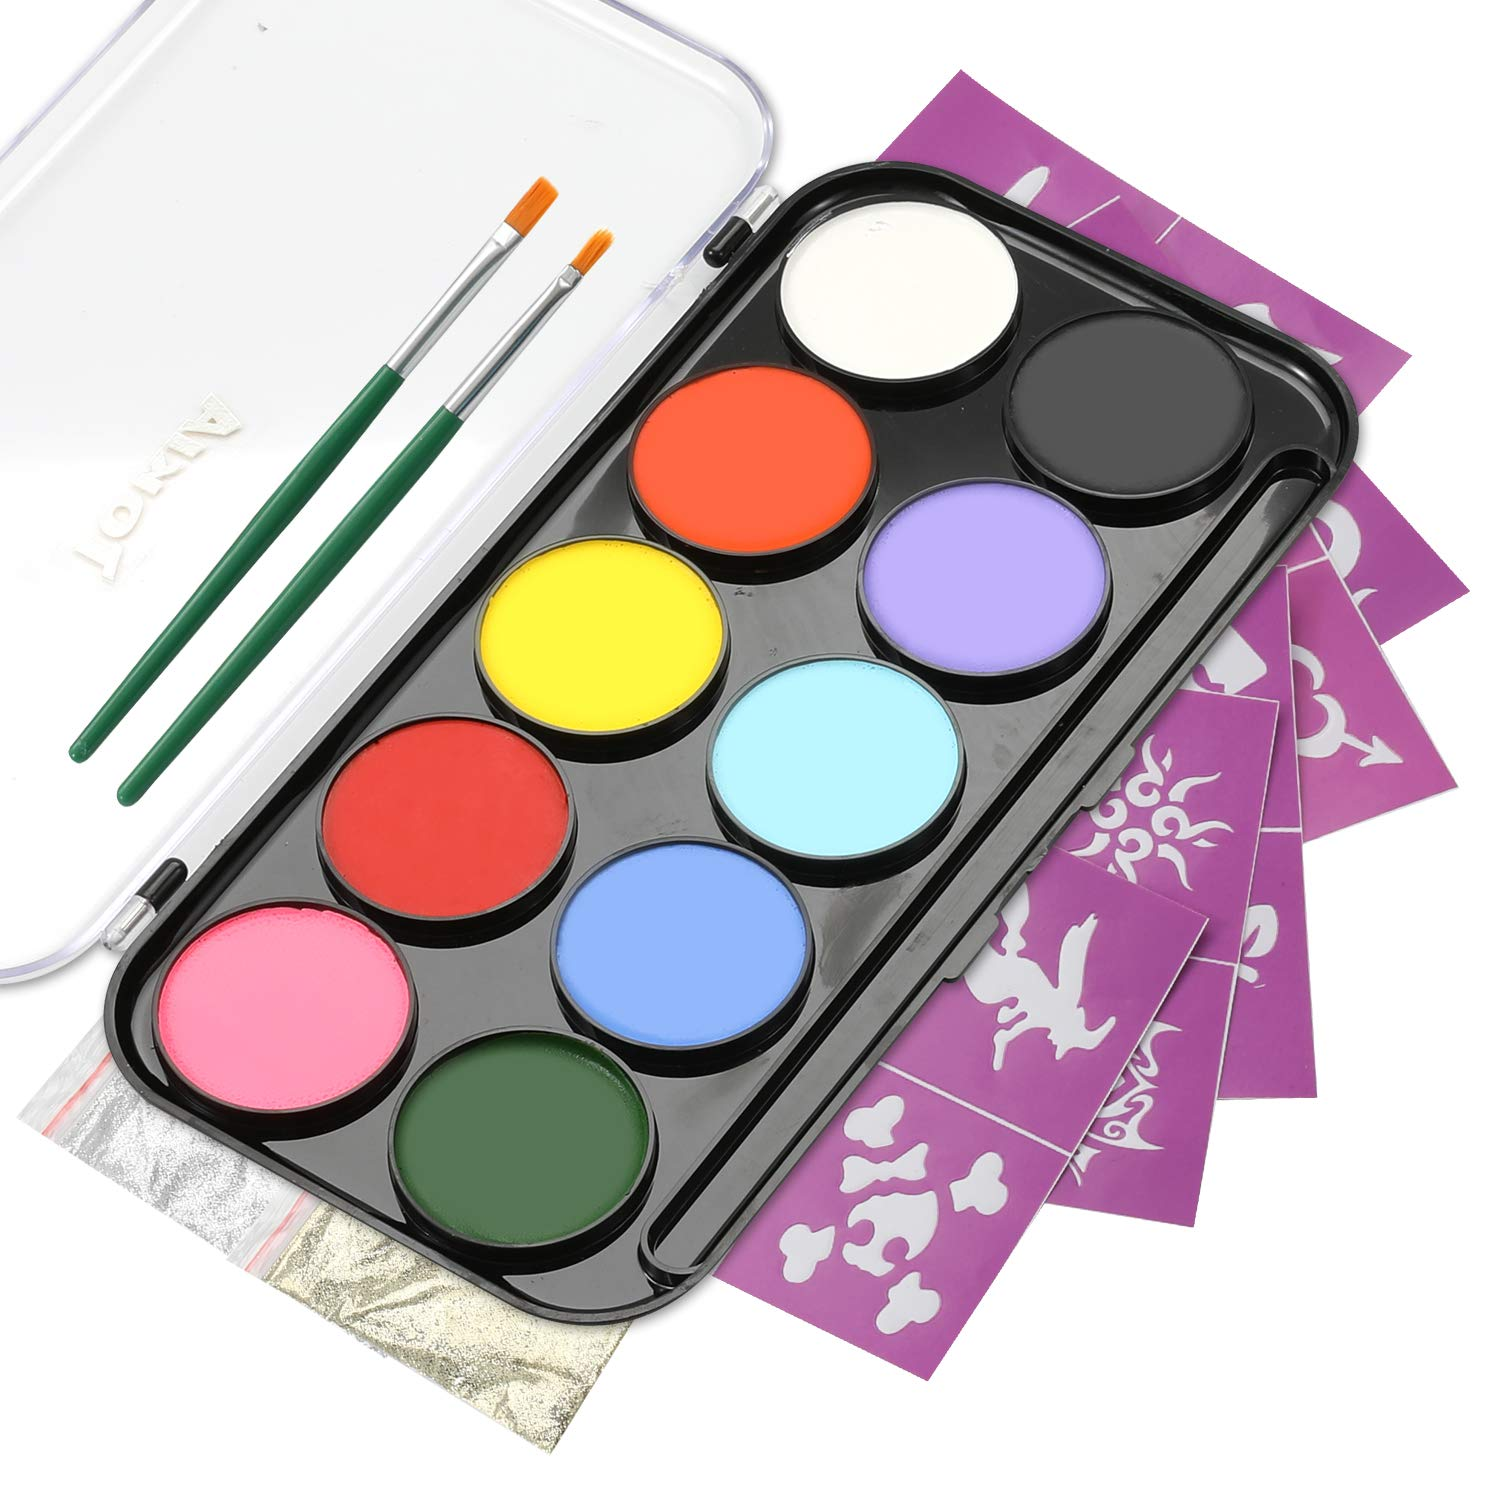 10 Colors Face Paint Palette And Body Art Painting Kit With 36 Stencils Non Toxic Water Based Halloween Makeup Set